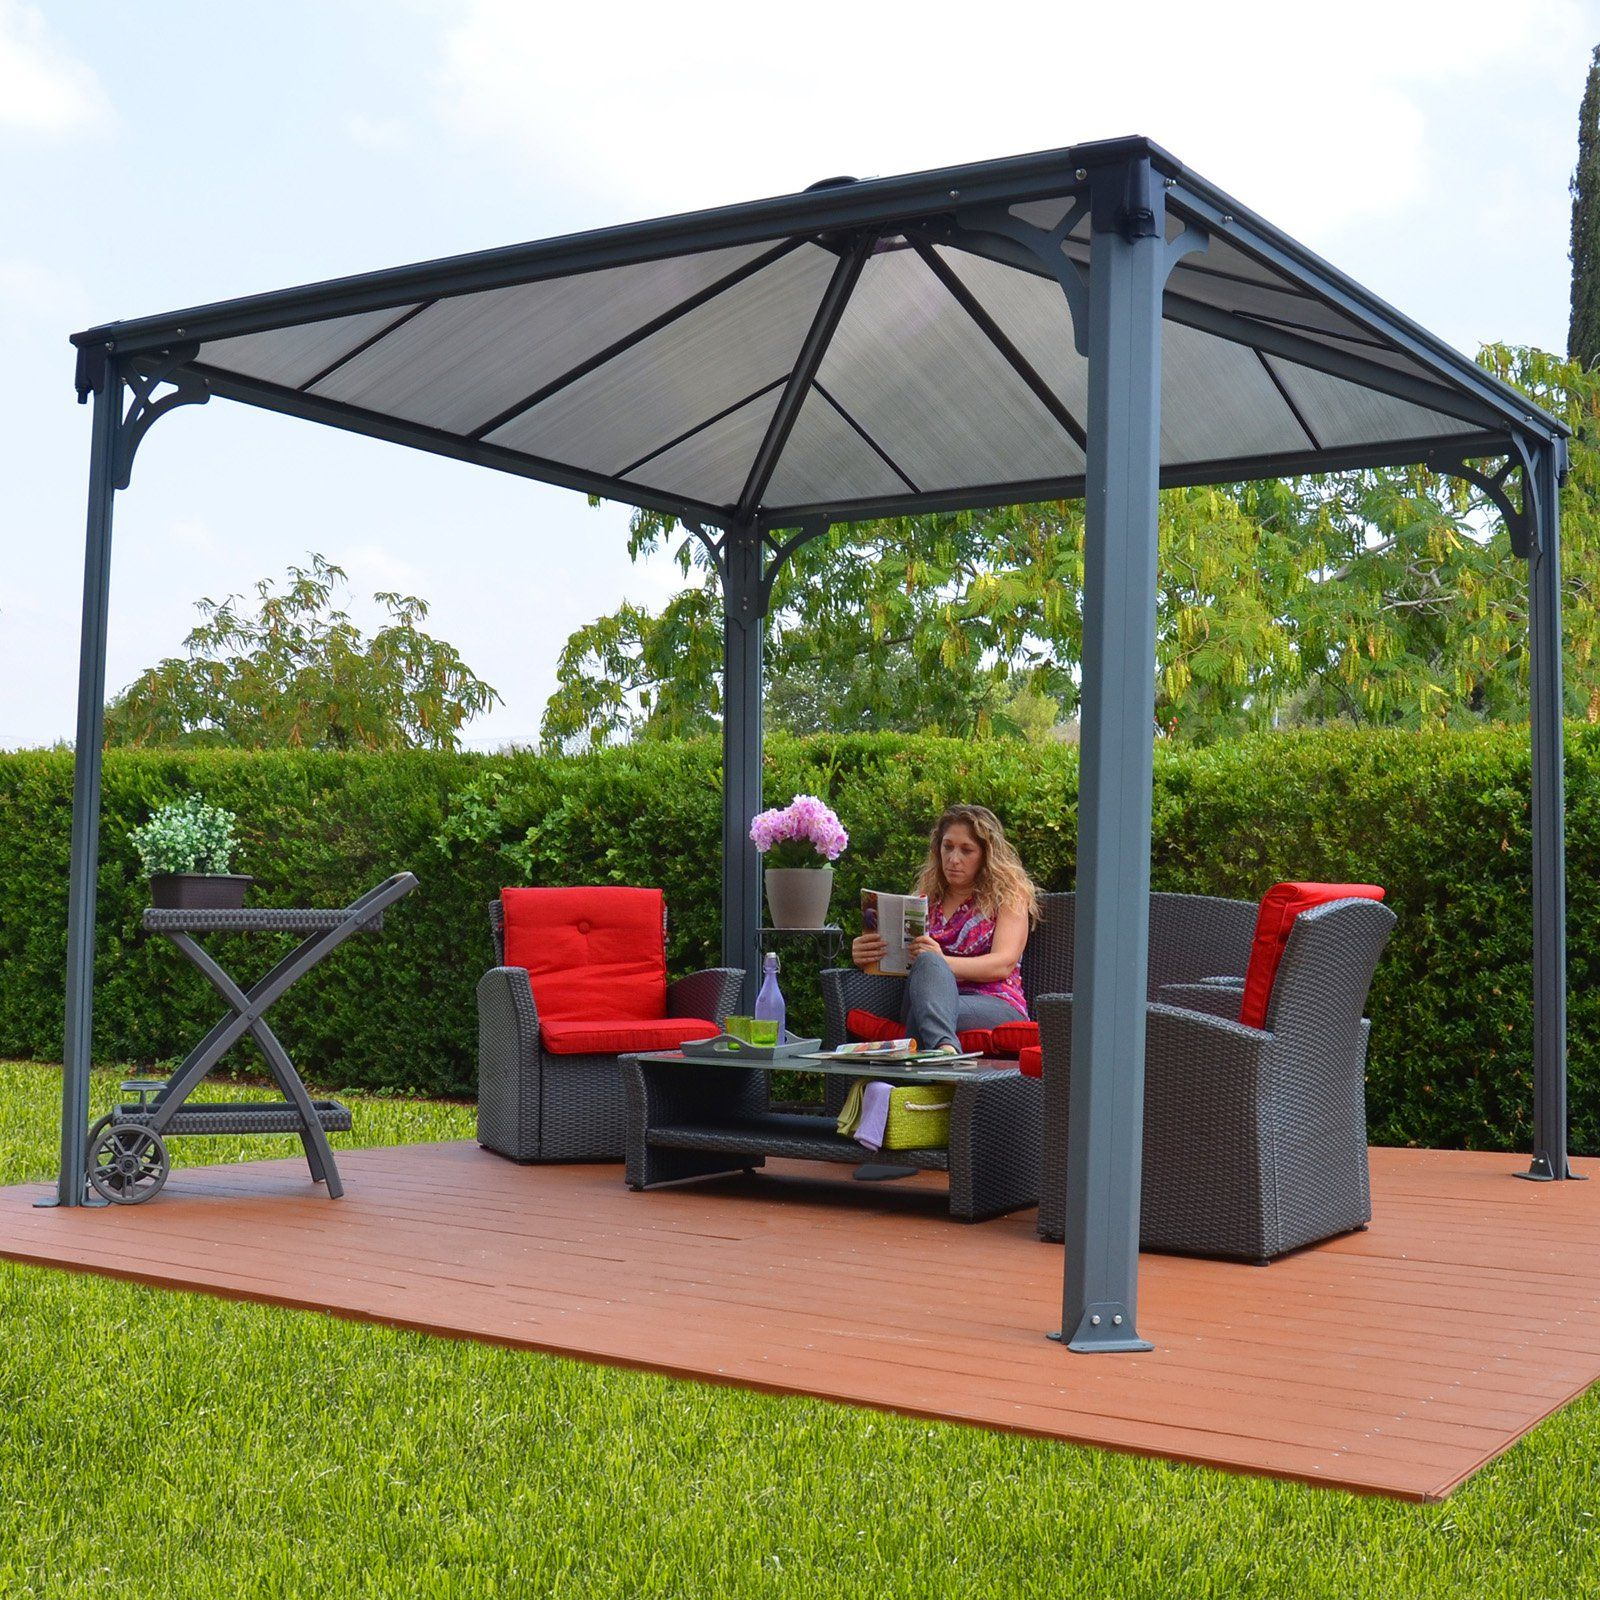 Extremely Have to have it. Palram Palermo 3600 Gazebo - 12 x 12 ft. - Gray  HK12